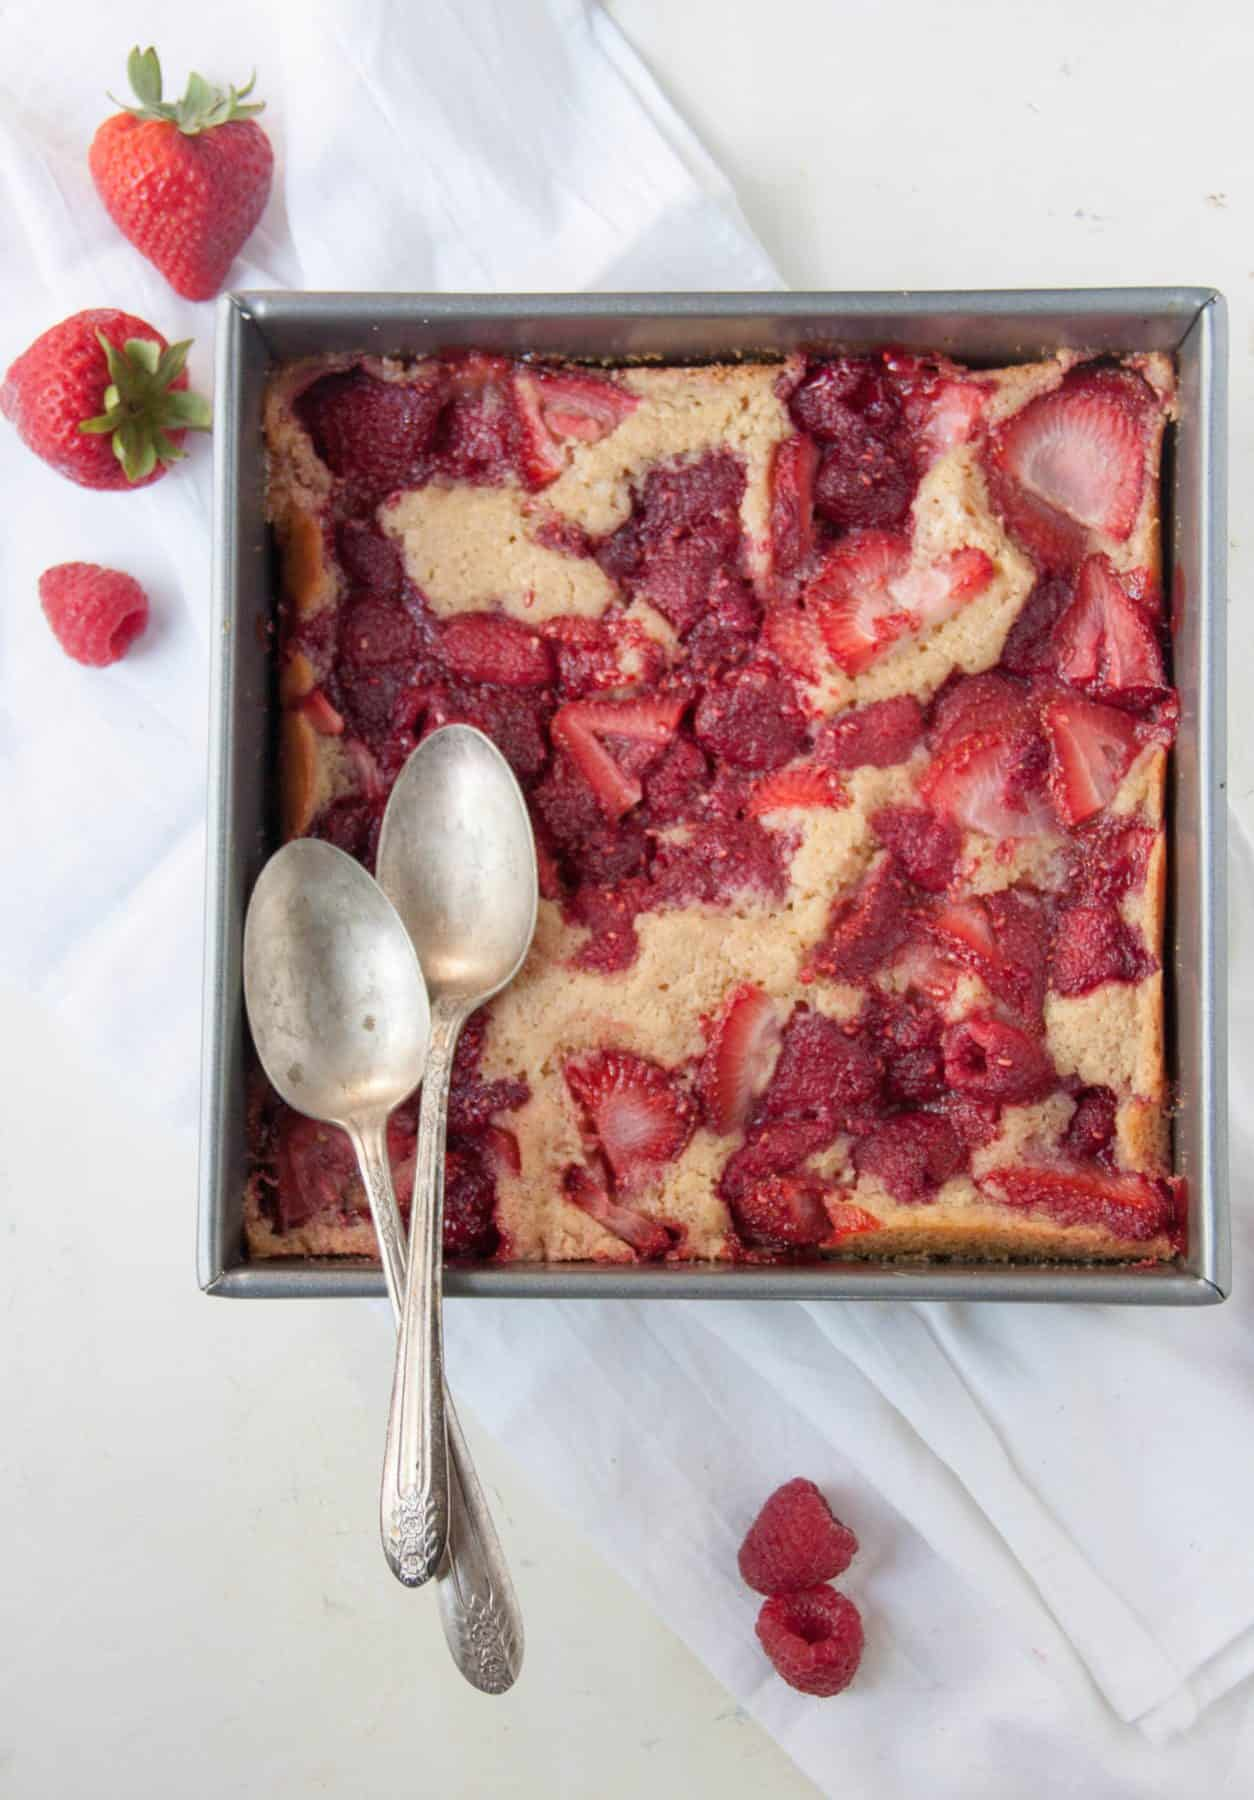 strawberry raspberry cobbler with two spoons